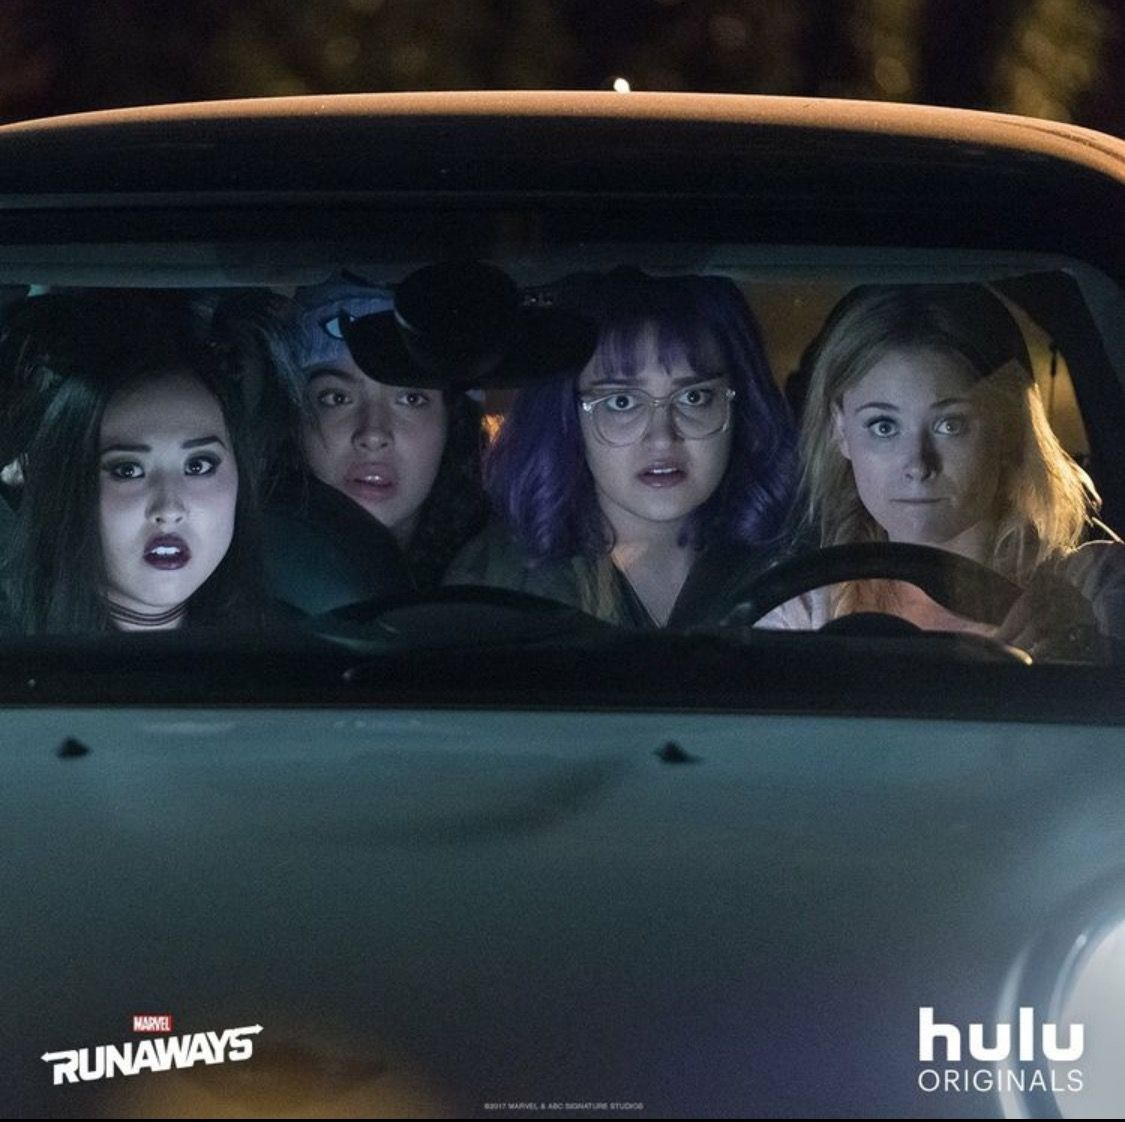 Marvel Runaways TV Show Premier Episodes Review